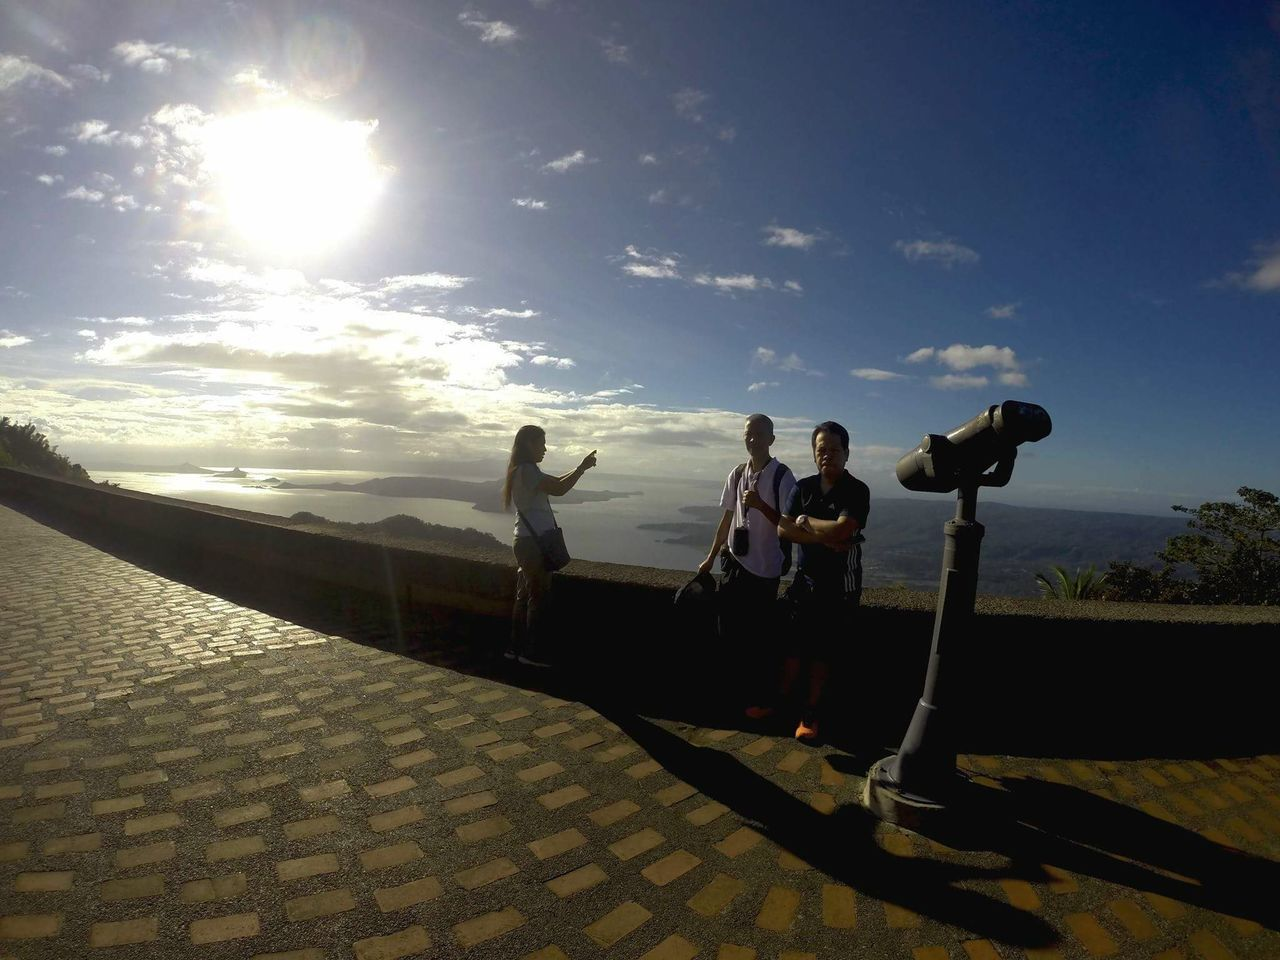 Photography Themes view from the famous taal volcano in tagaytay city, philippines with my family. My Year My View Sunlight Photographing Young Adult Camera - Photographic Equipment Young Women Women Sky Photographer Outdoors People Two People Adult Adults Only Full Length Nature Day Tagaytay2016